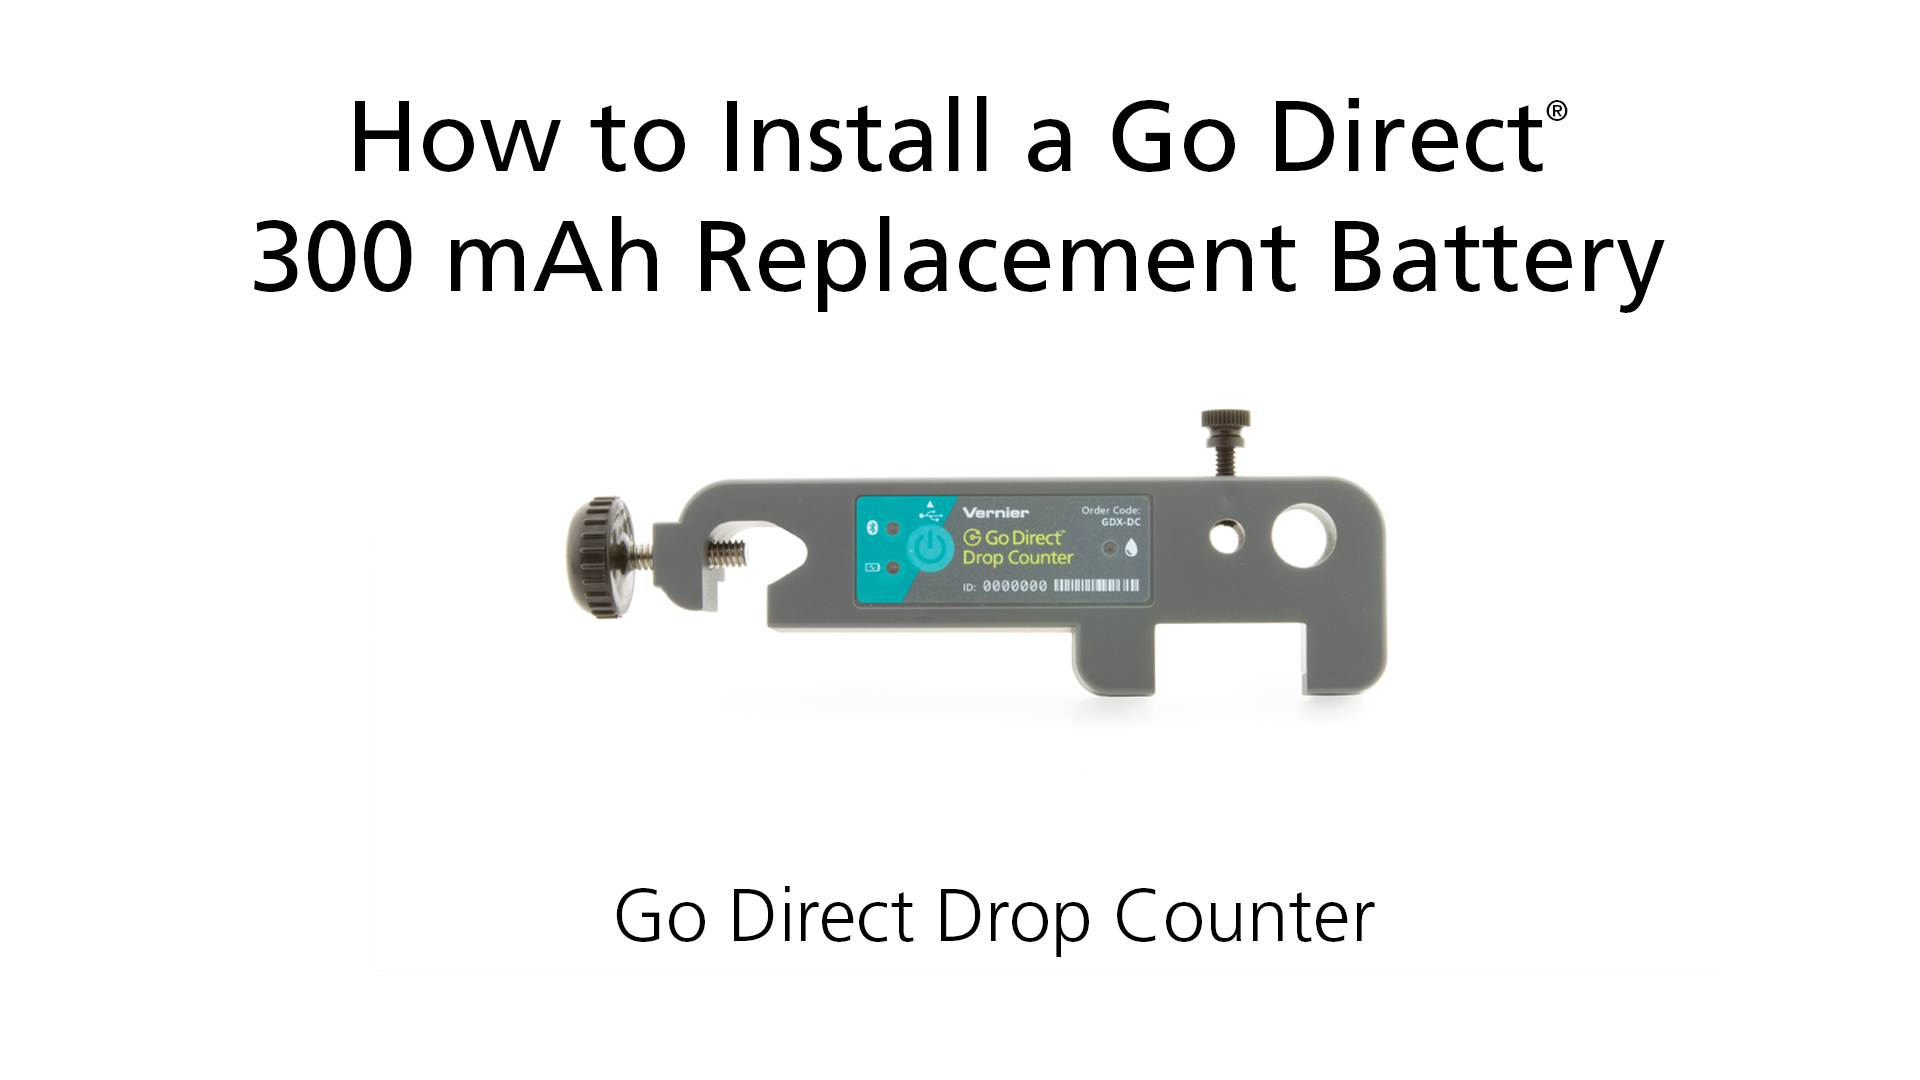 How to Install a Go Direct® 300 mAh Replacement Battery in Go Direct Drop Counter video